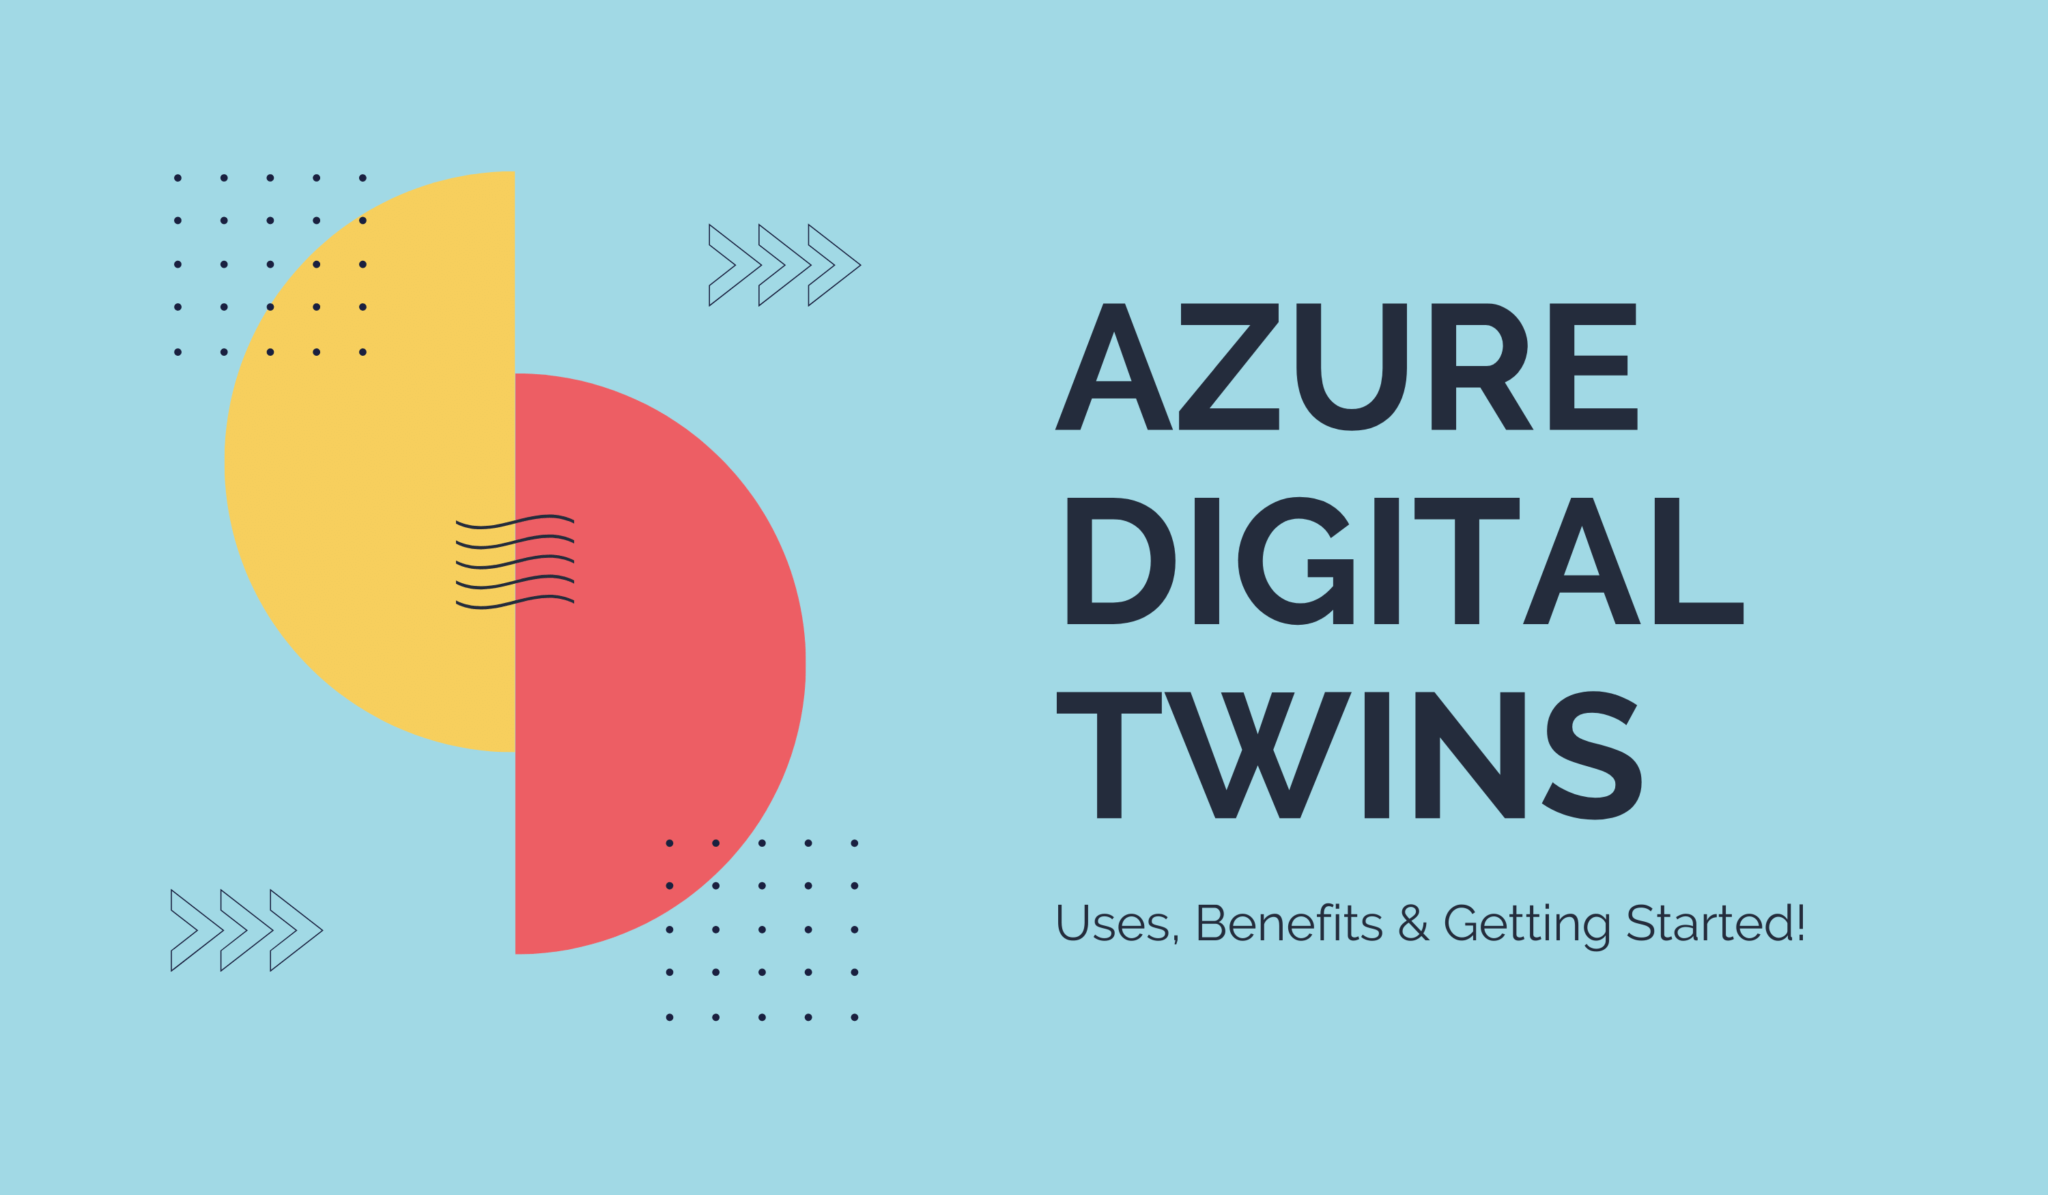 How to Use Azure Digital Twins to Enhance IoT Systems – Getting Started Guide